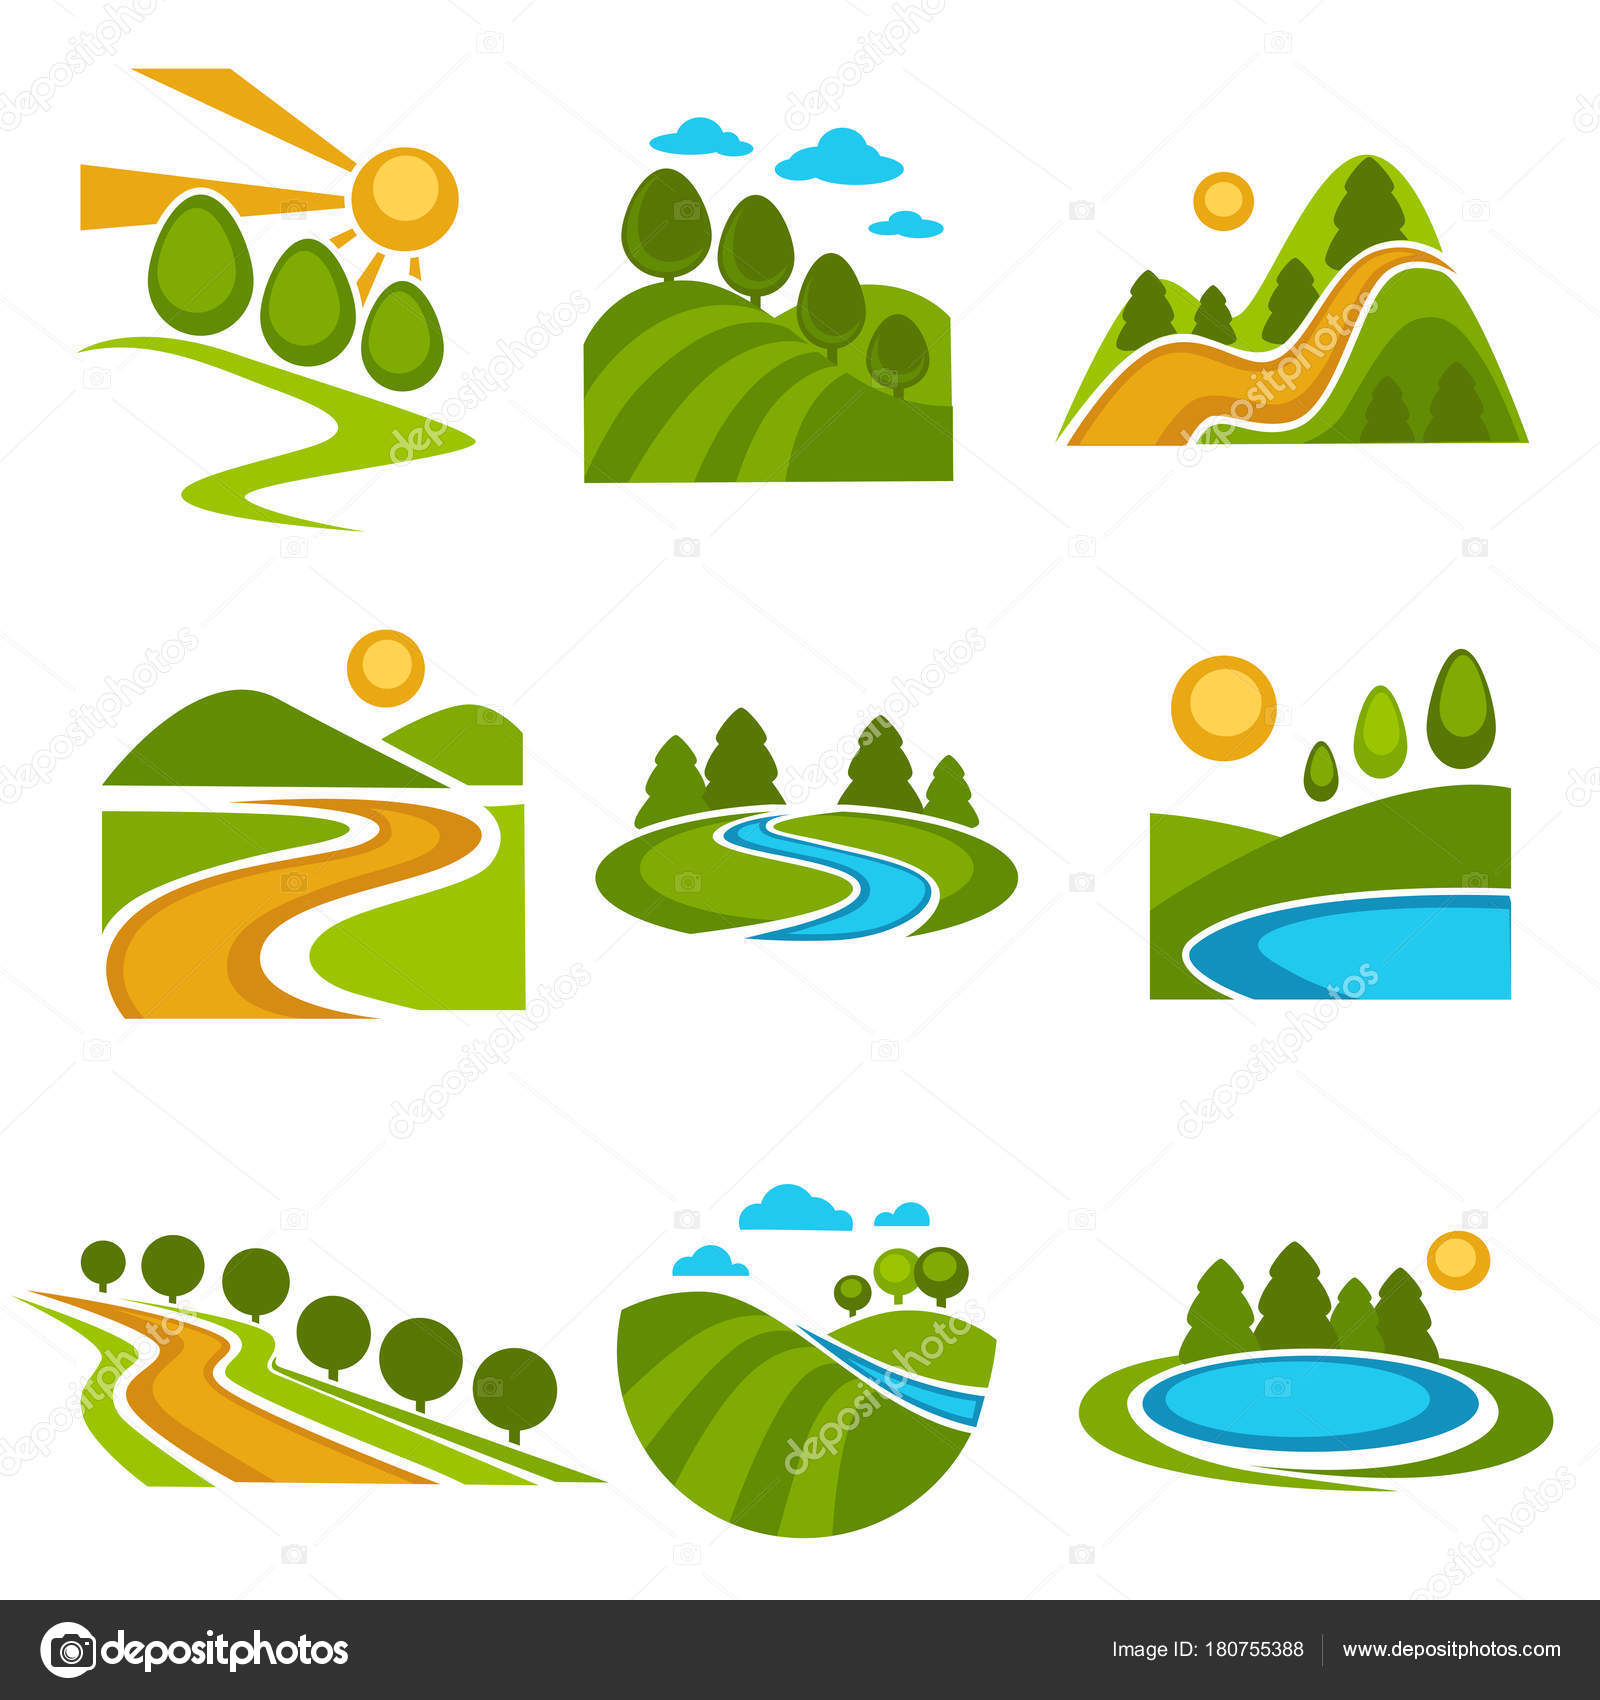 nature landscape logo templates green ecology environment